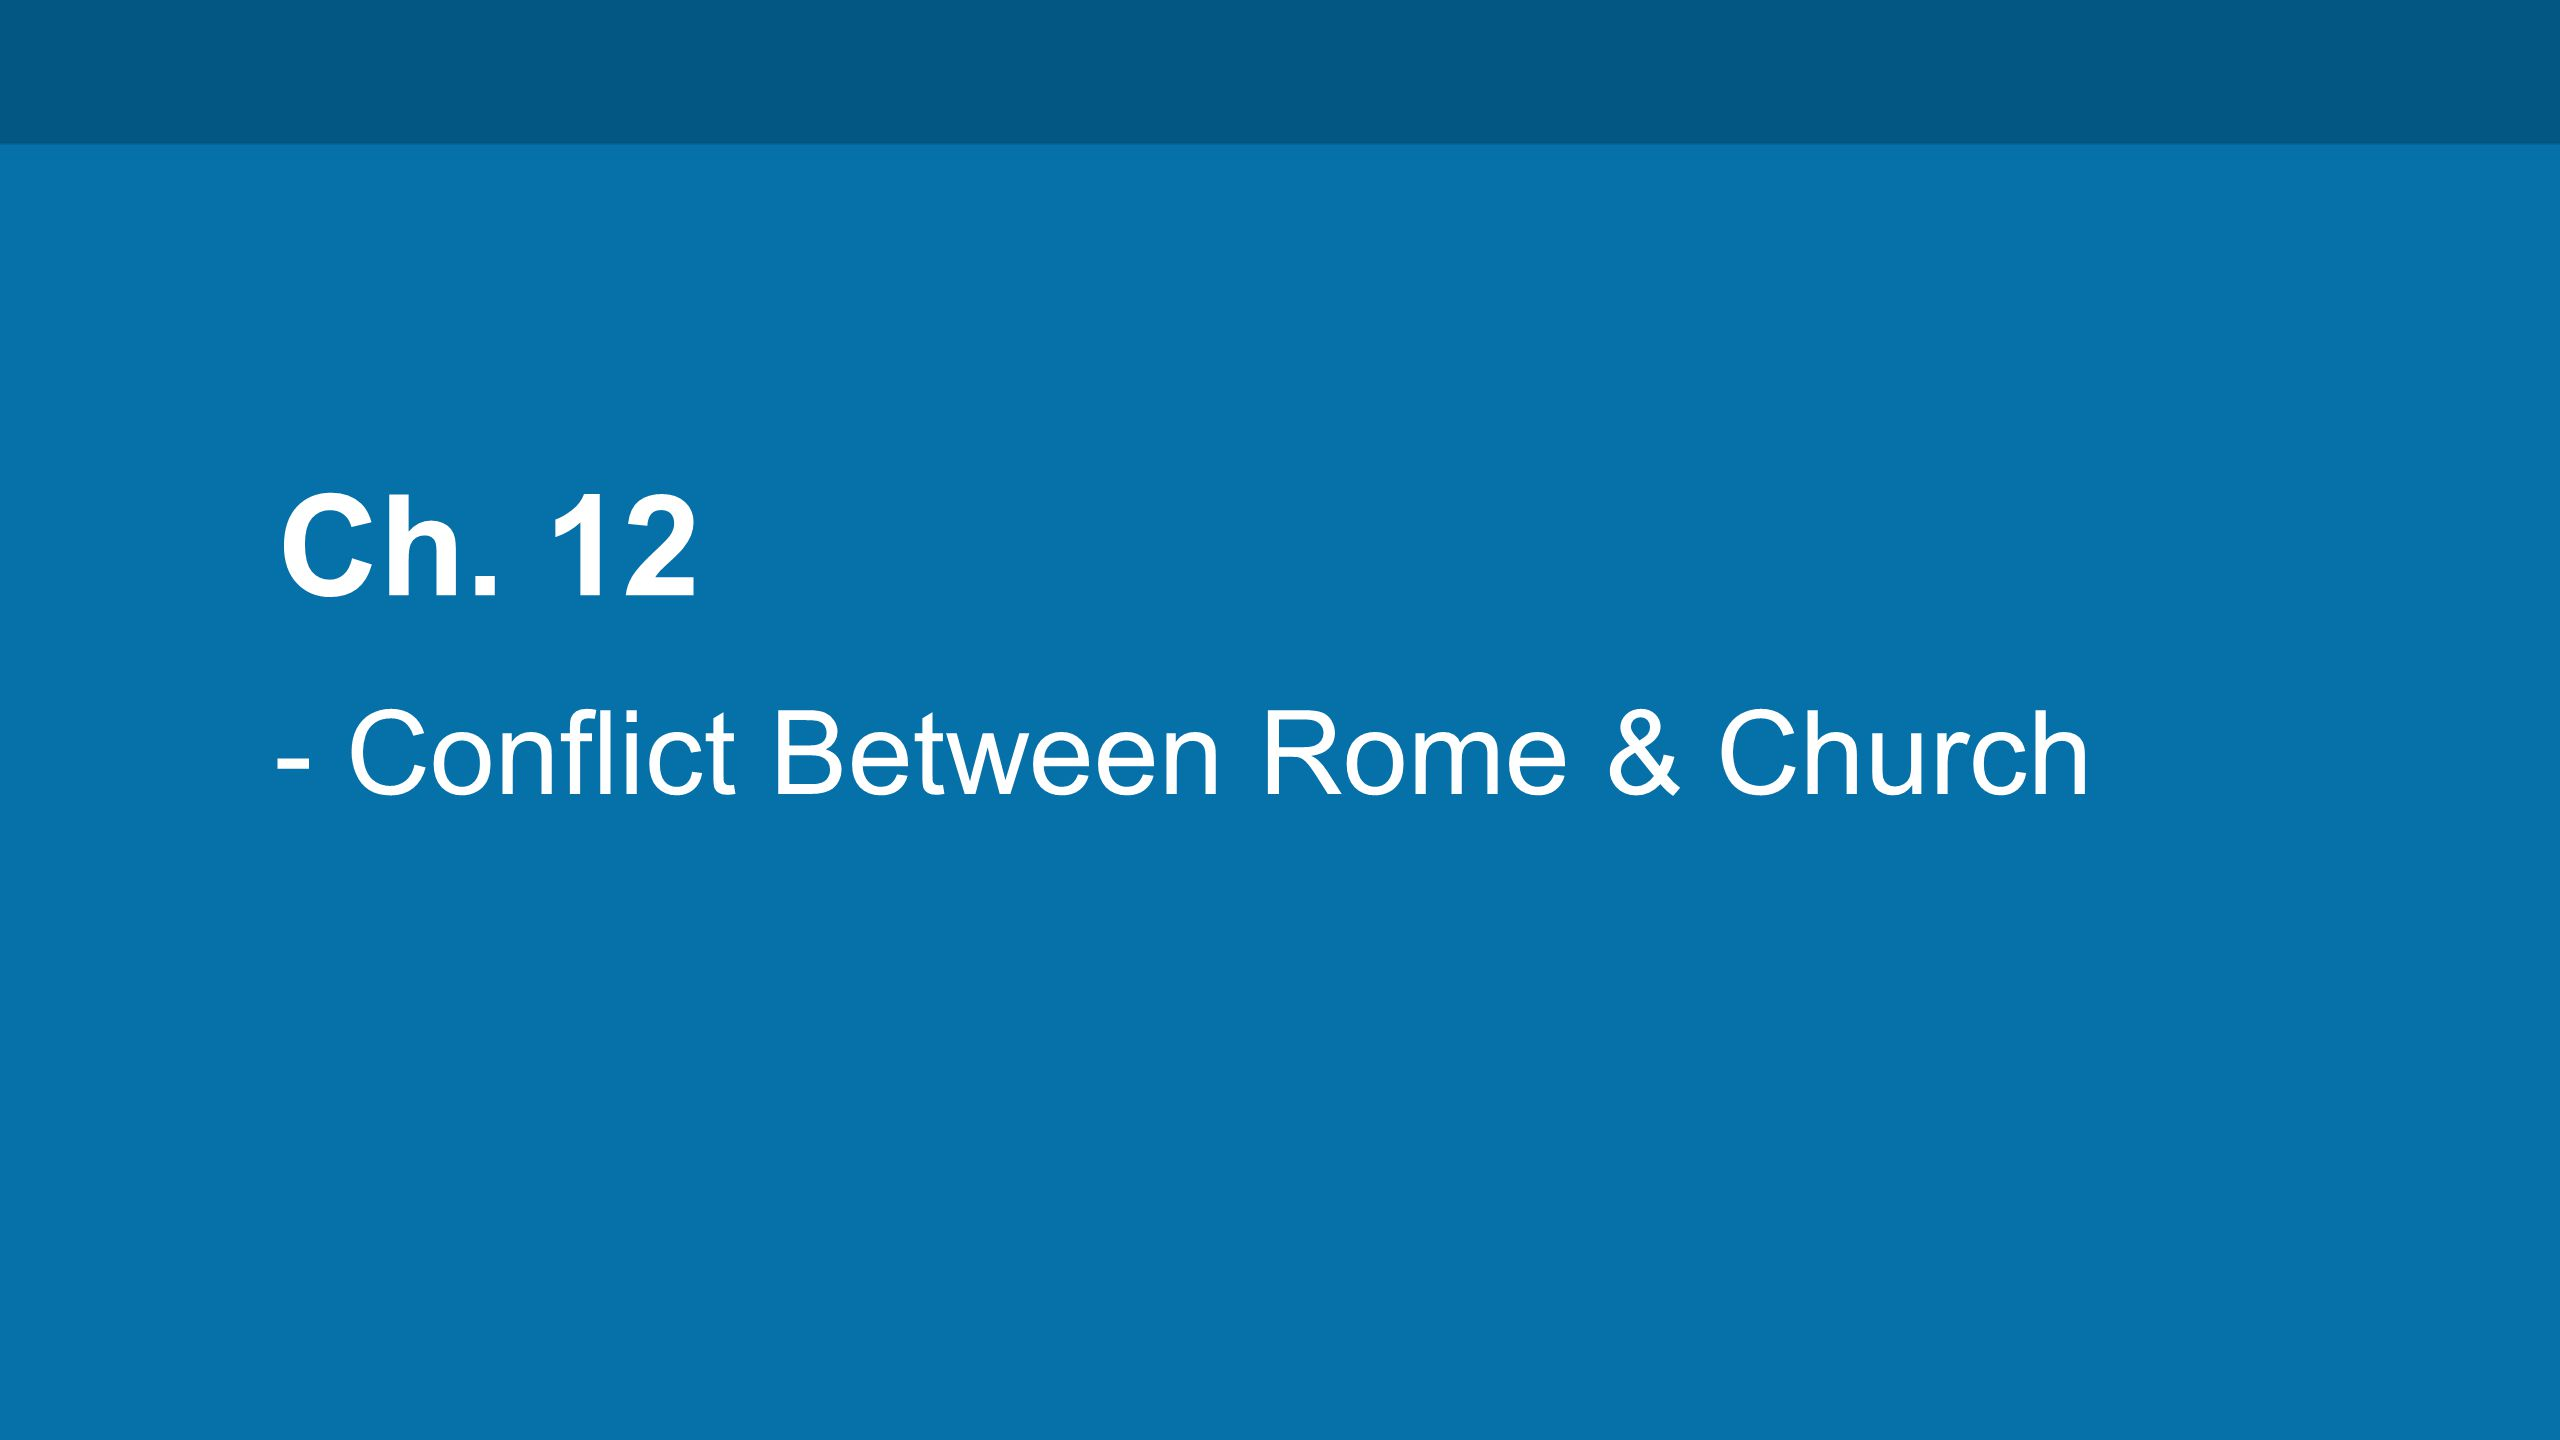 Ch. 12 - Conflict Between Rome & Church